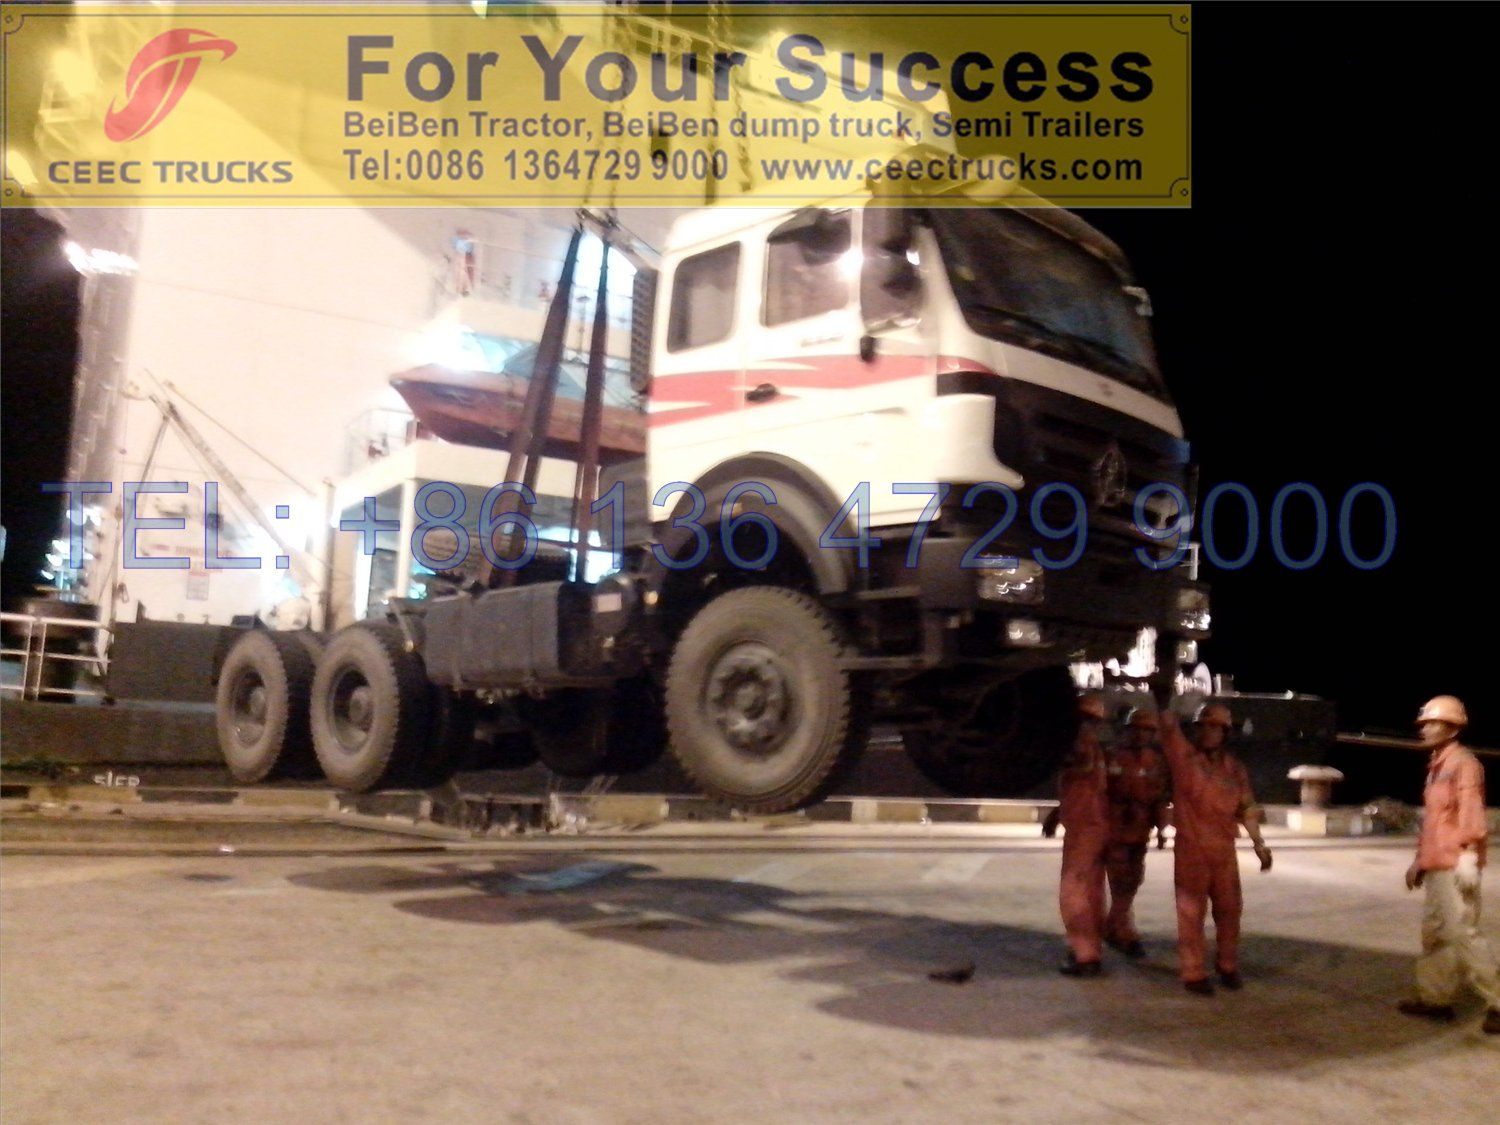 Buy High Quality Beiben 2634 336hp Tractor For Sale Online Trucks Tractors For Sale Monster Trucks